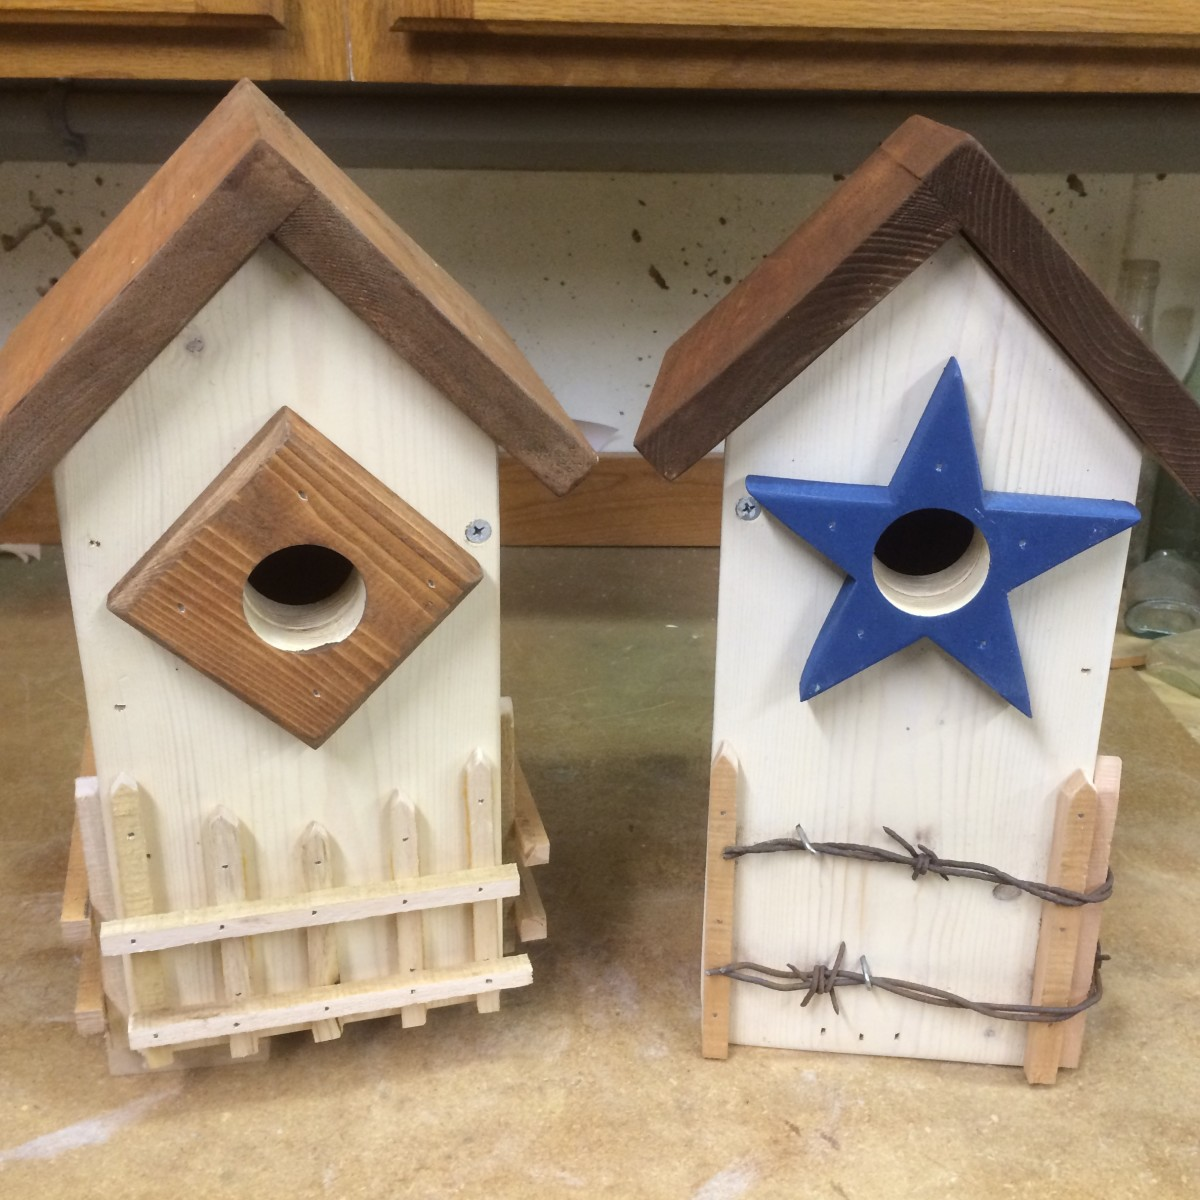 Bluebird houses with style!